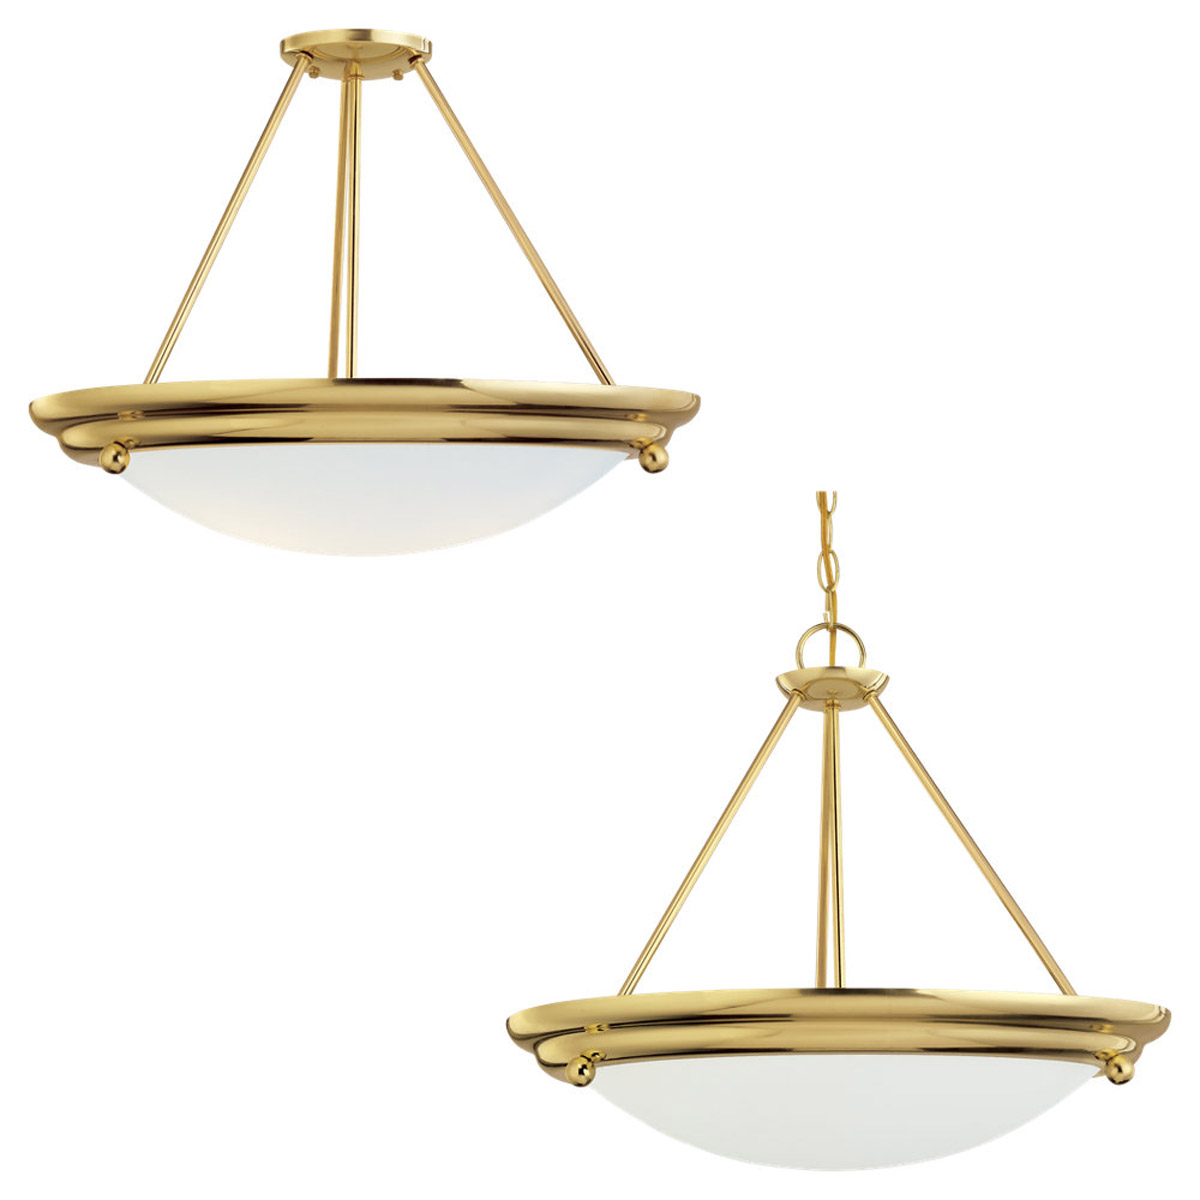 Sea Gull Lighting Centra 4 Light Semi-Flush Mount in Polished Brass 66238-02 photo